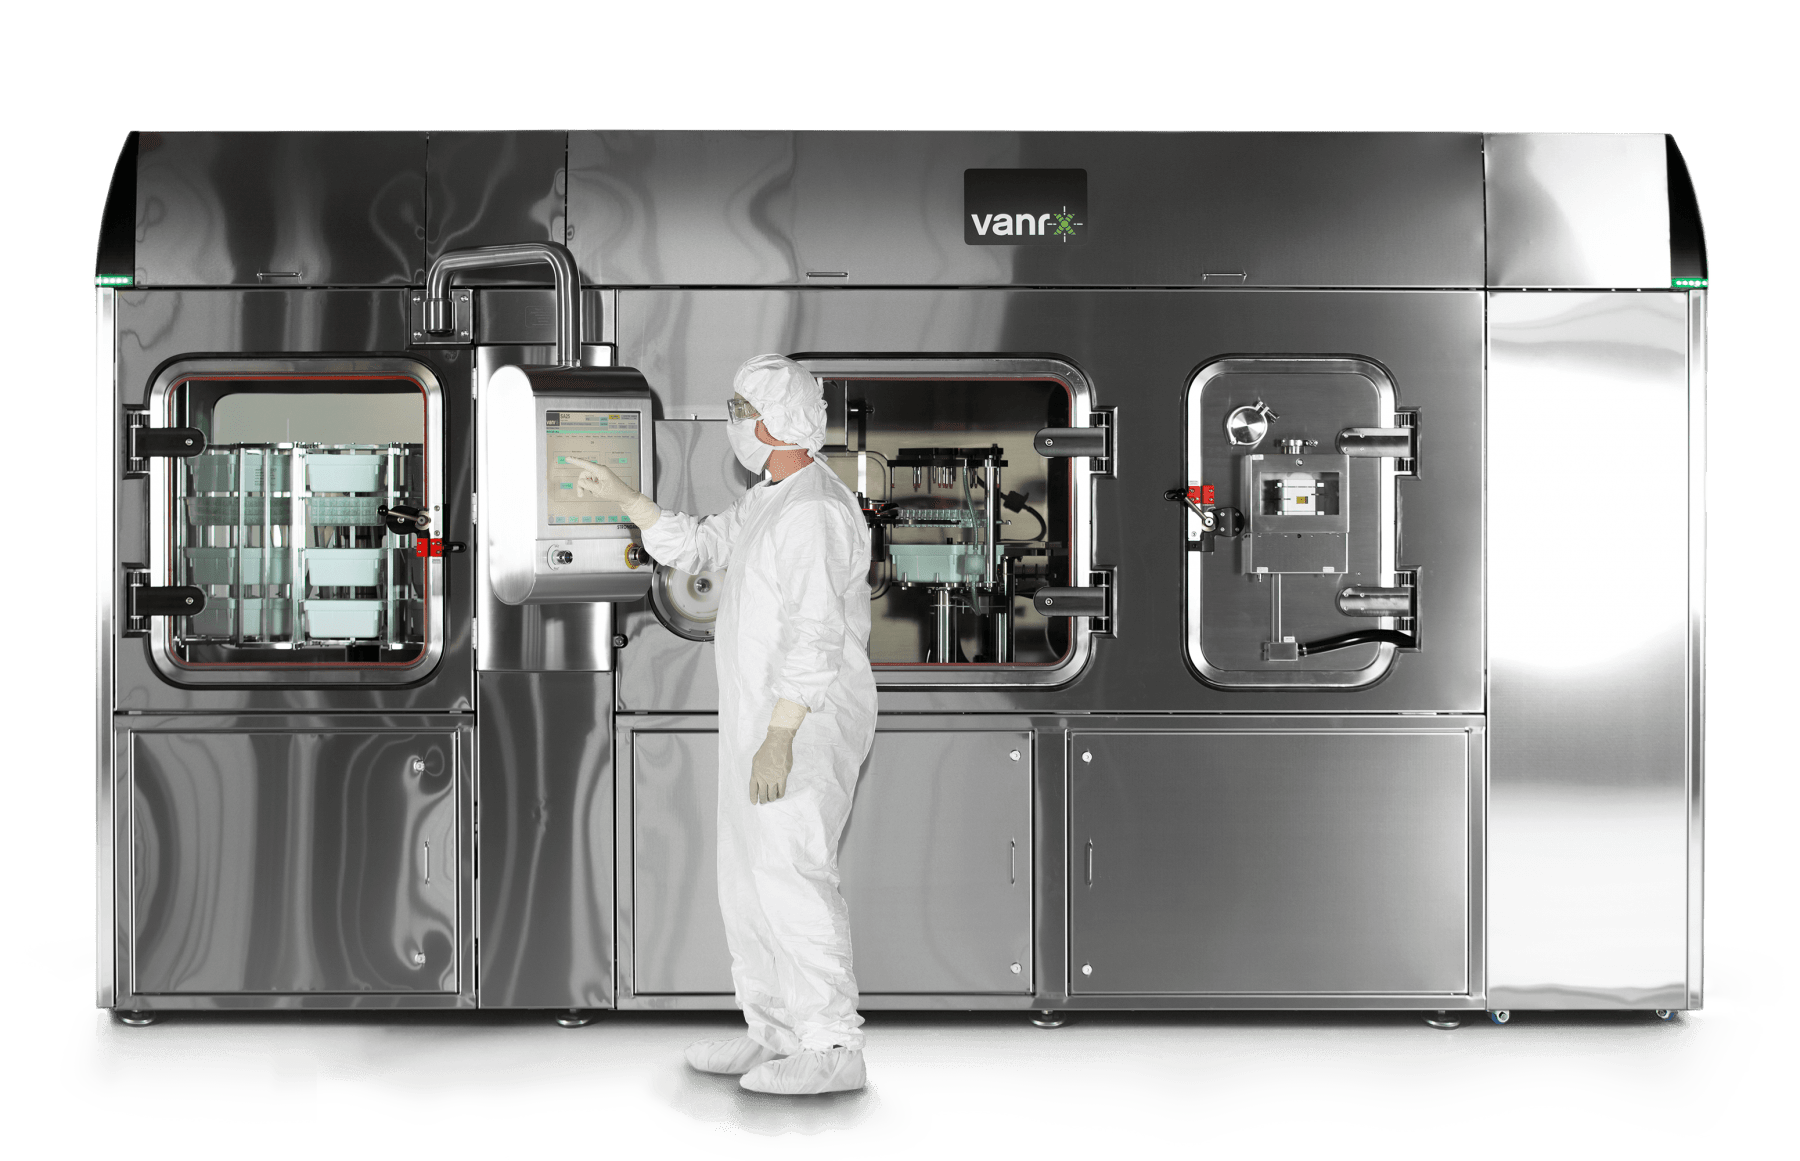 Closed robotic workcells are gloveless isolator systems used for aseptic filling of sterile injectable drug product into vials, syringes and cartridges.